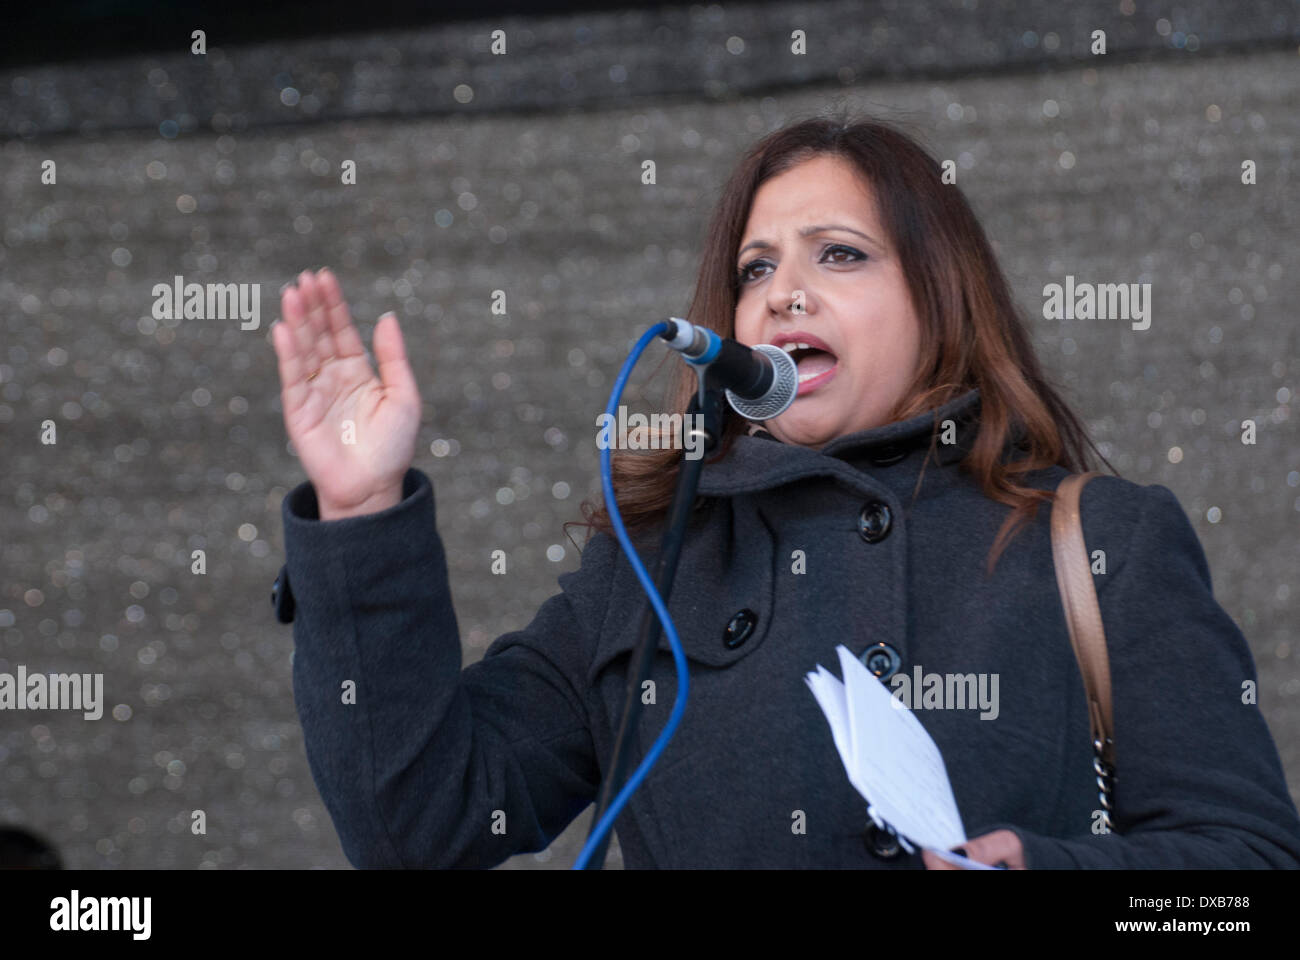 London, UK. 22nd March 2014. Unite Against Fascism Joint secretary Sabby Dhalu addresses the Anti-Racism rally in London's Trafalgar Square. Credit:  Peter Manning/Alamy Live News - Stock Image